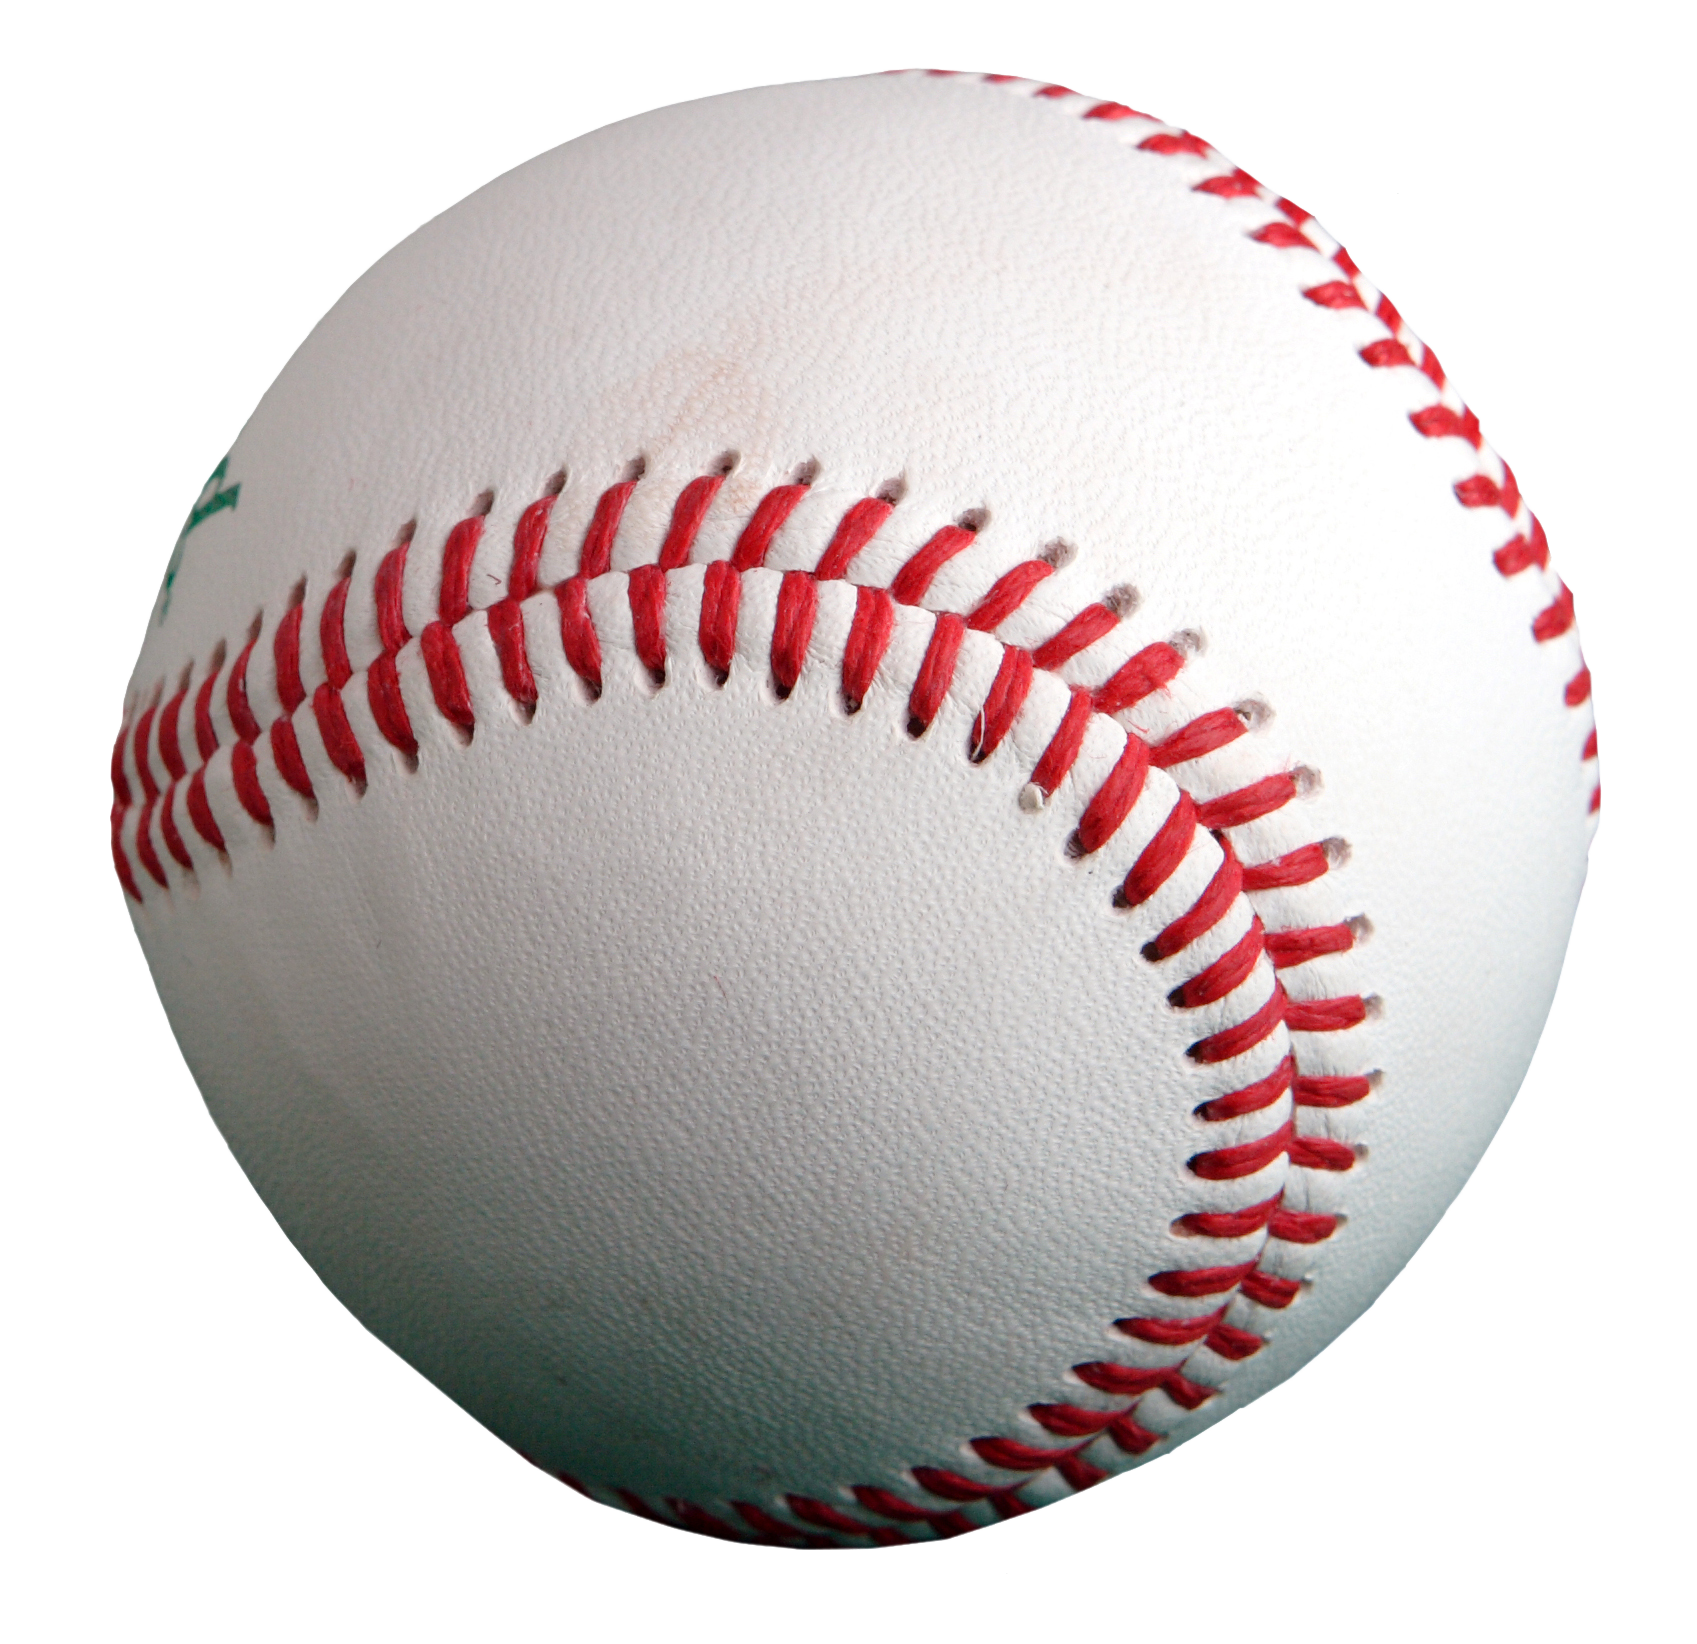 file baseball crop transparent wikimedia commons #18813